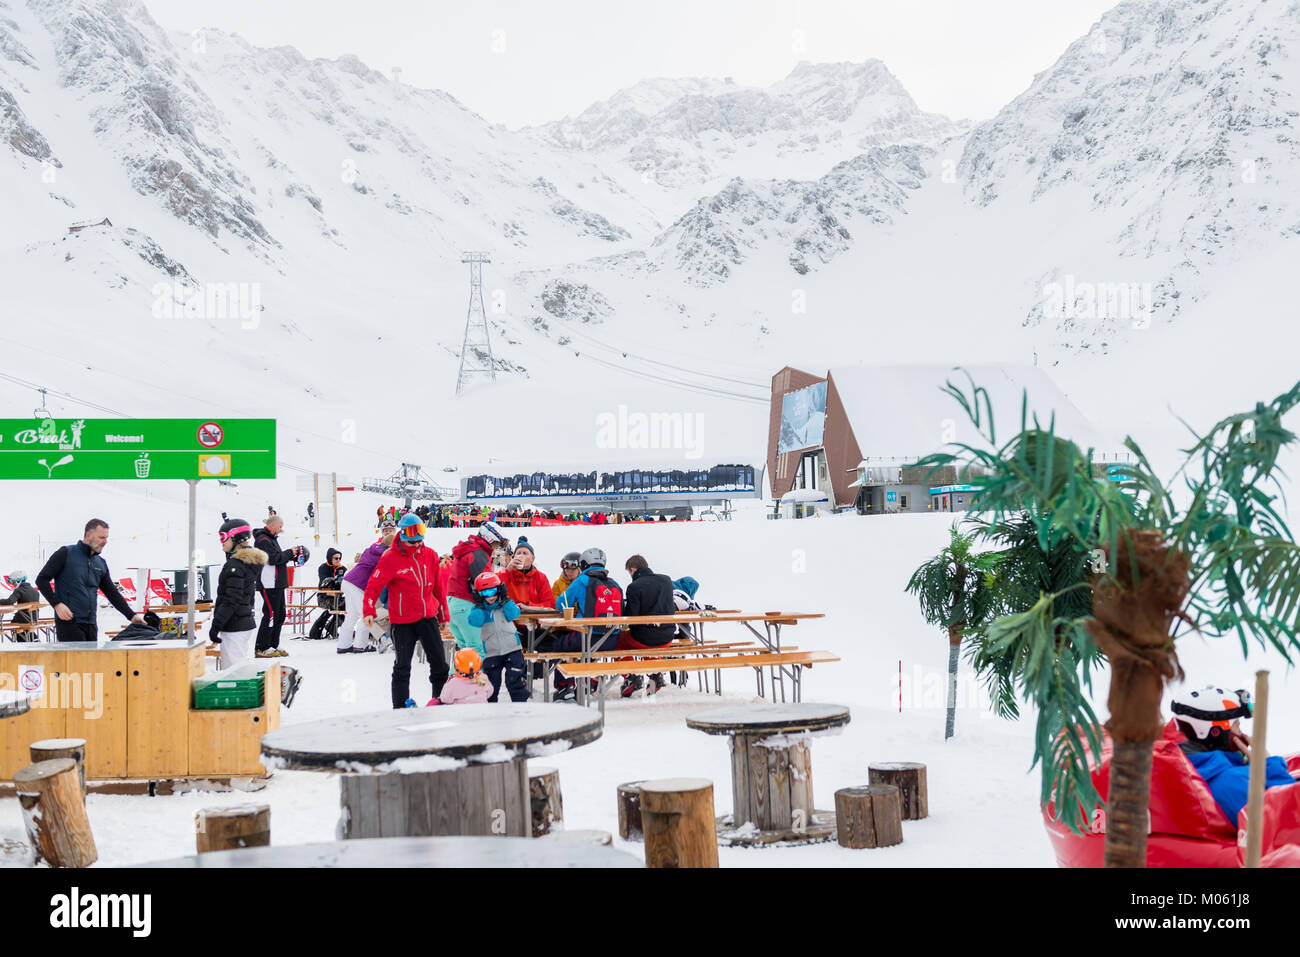 VERBIER, SWITZERLAND - JANUARY 5, 2018: Ski resort in Swiss Alps near Restaurant Le Dahu, situated right at the - Stock Image